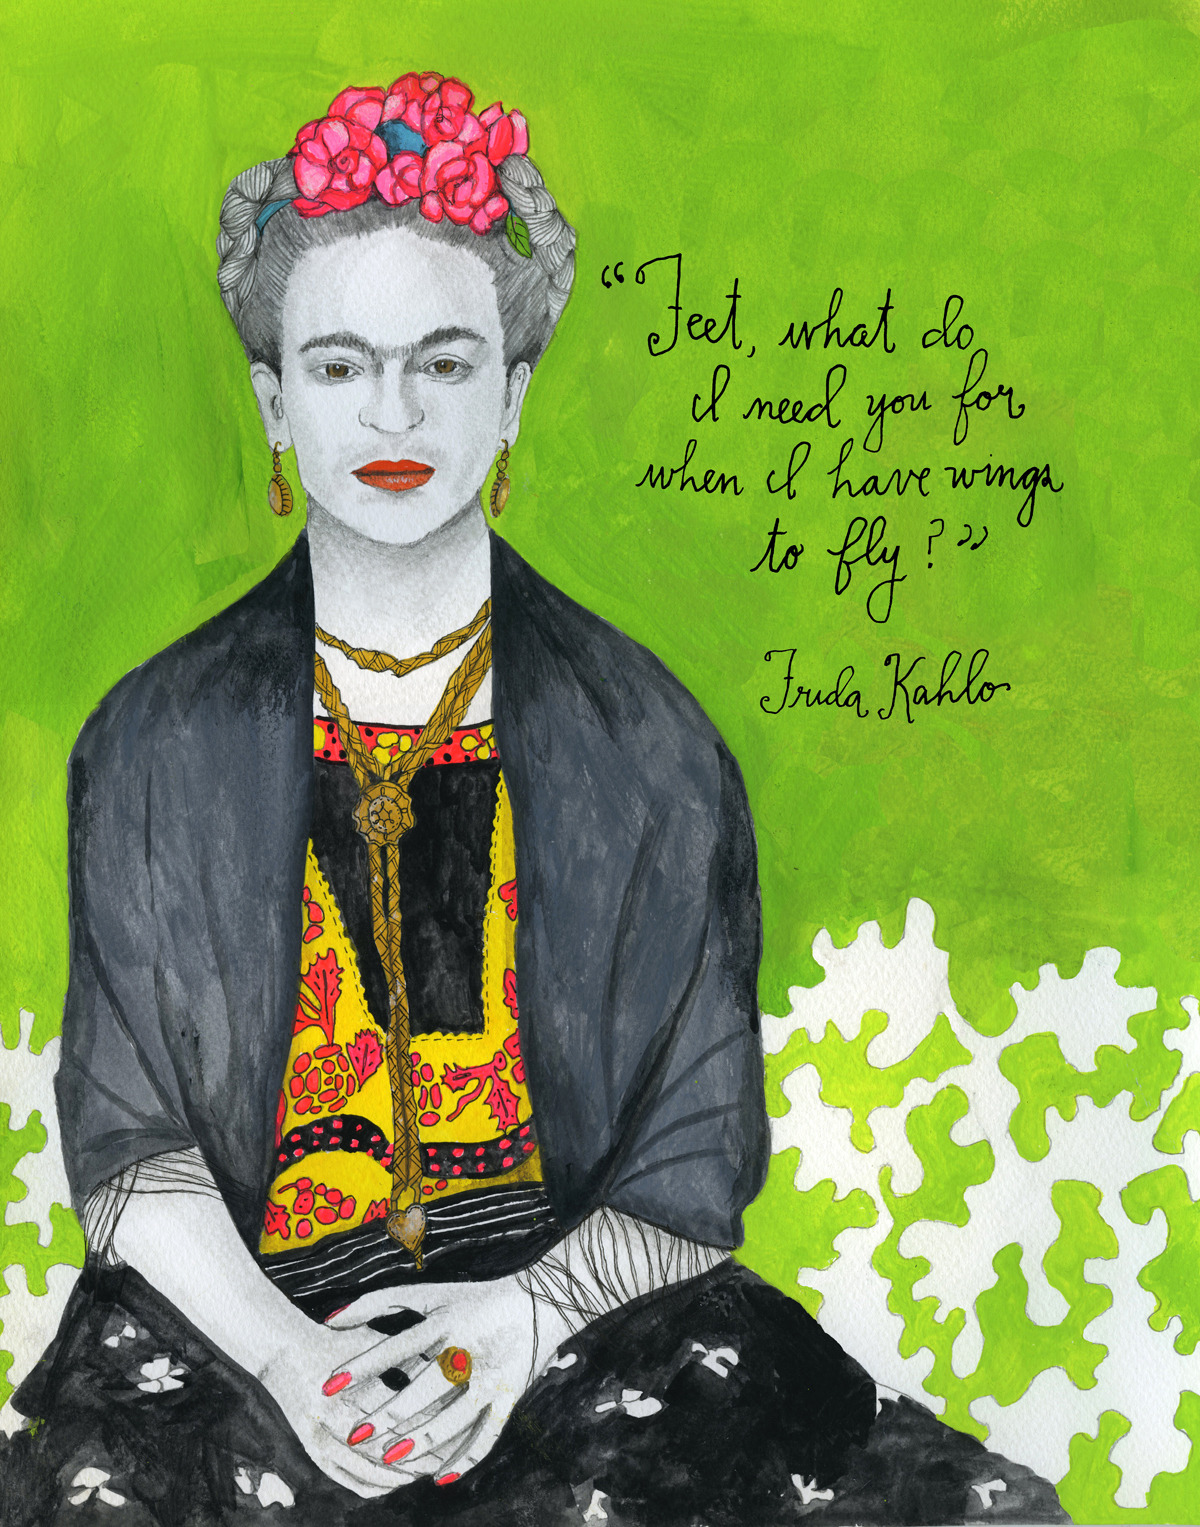 "Mexican painter Frida Kahlo (July 6, 1907 – July 13, 1954) remains best-known for her vibrant self-portraits, which comprise 55 of her 143 paintings and combine elements from traditional Mexican art with a surrealist aesthetic. This dual mesmerism with indigenous Mexican culture and the spirit of the new imbued Kahlo's entire sensibility – she even insisted on stating July 7, 1910 as her birth date, rather than the correct date her birth certificate reflected, in order to make her birth coincide with the start of the Mexican revolution and thus align her life with the dawn of modern Mexico. Kahlo was befallen by a disproportionate amount of medical misfortune. As a young child, she contracted polio, which prevented her right leg from developing fully – an imperfection she'd later come to disguise with her famous colorful skirts. As a teenager, while studying at Mexico's prestigious Preparatoria school as one of only thirty-five girls, she was in a serious traffic accident, which left her with multiple body fractures and internal lesions inflicted by an iron rod that had pierced her stomach and uterus. It took her three months in full-body cast to recover and though she eventually willed her way to walking again, she spent the rest of her life battling frequent relapses of extreme pain and enduring frequent hospital visits, including more than thirty operations. It was during her time in recovery that Kahlo first began painting, at first as a way of occupying herself while bedridden. Her mother even had a special easel made for her in order to be able to paint in bed with her father's set of oil paints and brushes. ""I paint myself because I am so often alone and because I am the subject I know best,"" she famously reflected on her self-portraits. Two years after the accident, in 1927, she met the painter Diego River, whose work she'd come to admire, and he went on to encourage and mentor her work. In 1929, despite her mother's protestations, the two were wedded and one of art history's most notoriously tumultuous marriages commenced. Both had multiple affairs, the most notable of which for bisexual Kahlo were with French singer, dancer, and actress Josephine Baker and Russian Marxist theorist Leon Trotsky. Despite her work being inducted into the world's most prestigious art institution when the Louvre purchased one of her self-portraits in 1939, Kahlo didn't reach wide critical acclaim until the early 1980s and the advent of the Neomexicanismo movement. Previously, she had been frequently reduced in historical accounts to ""Diego Rivera's wife."" Today, her work endures as one of the most prominent and singular voices in twentieth-century art. In her final days, shortly before turning 47, Kahlo wrote in her diary, ""I hope the exit is joyful — and I hope never to return."" Learn more: Wikipedia  